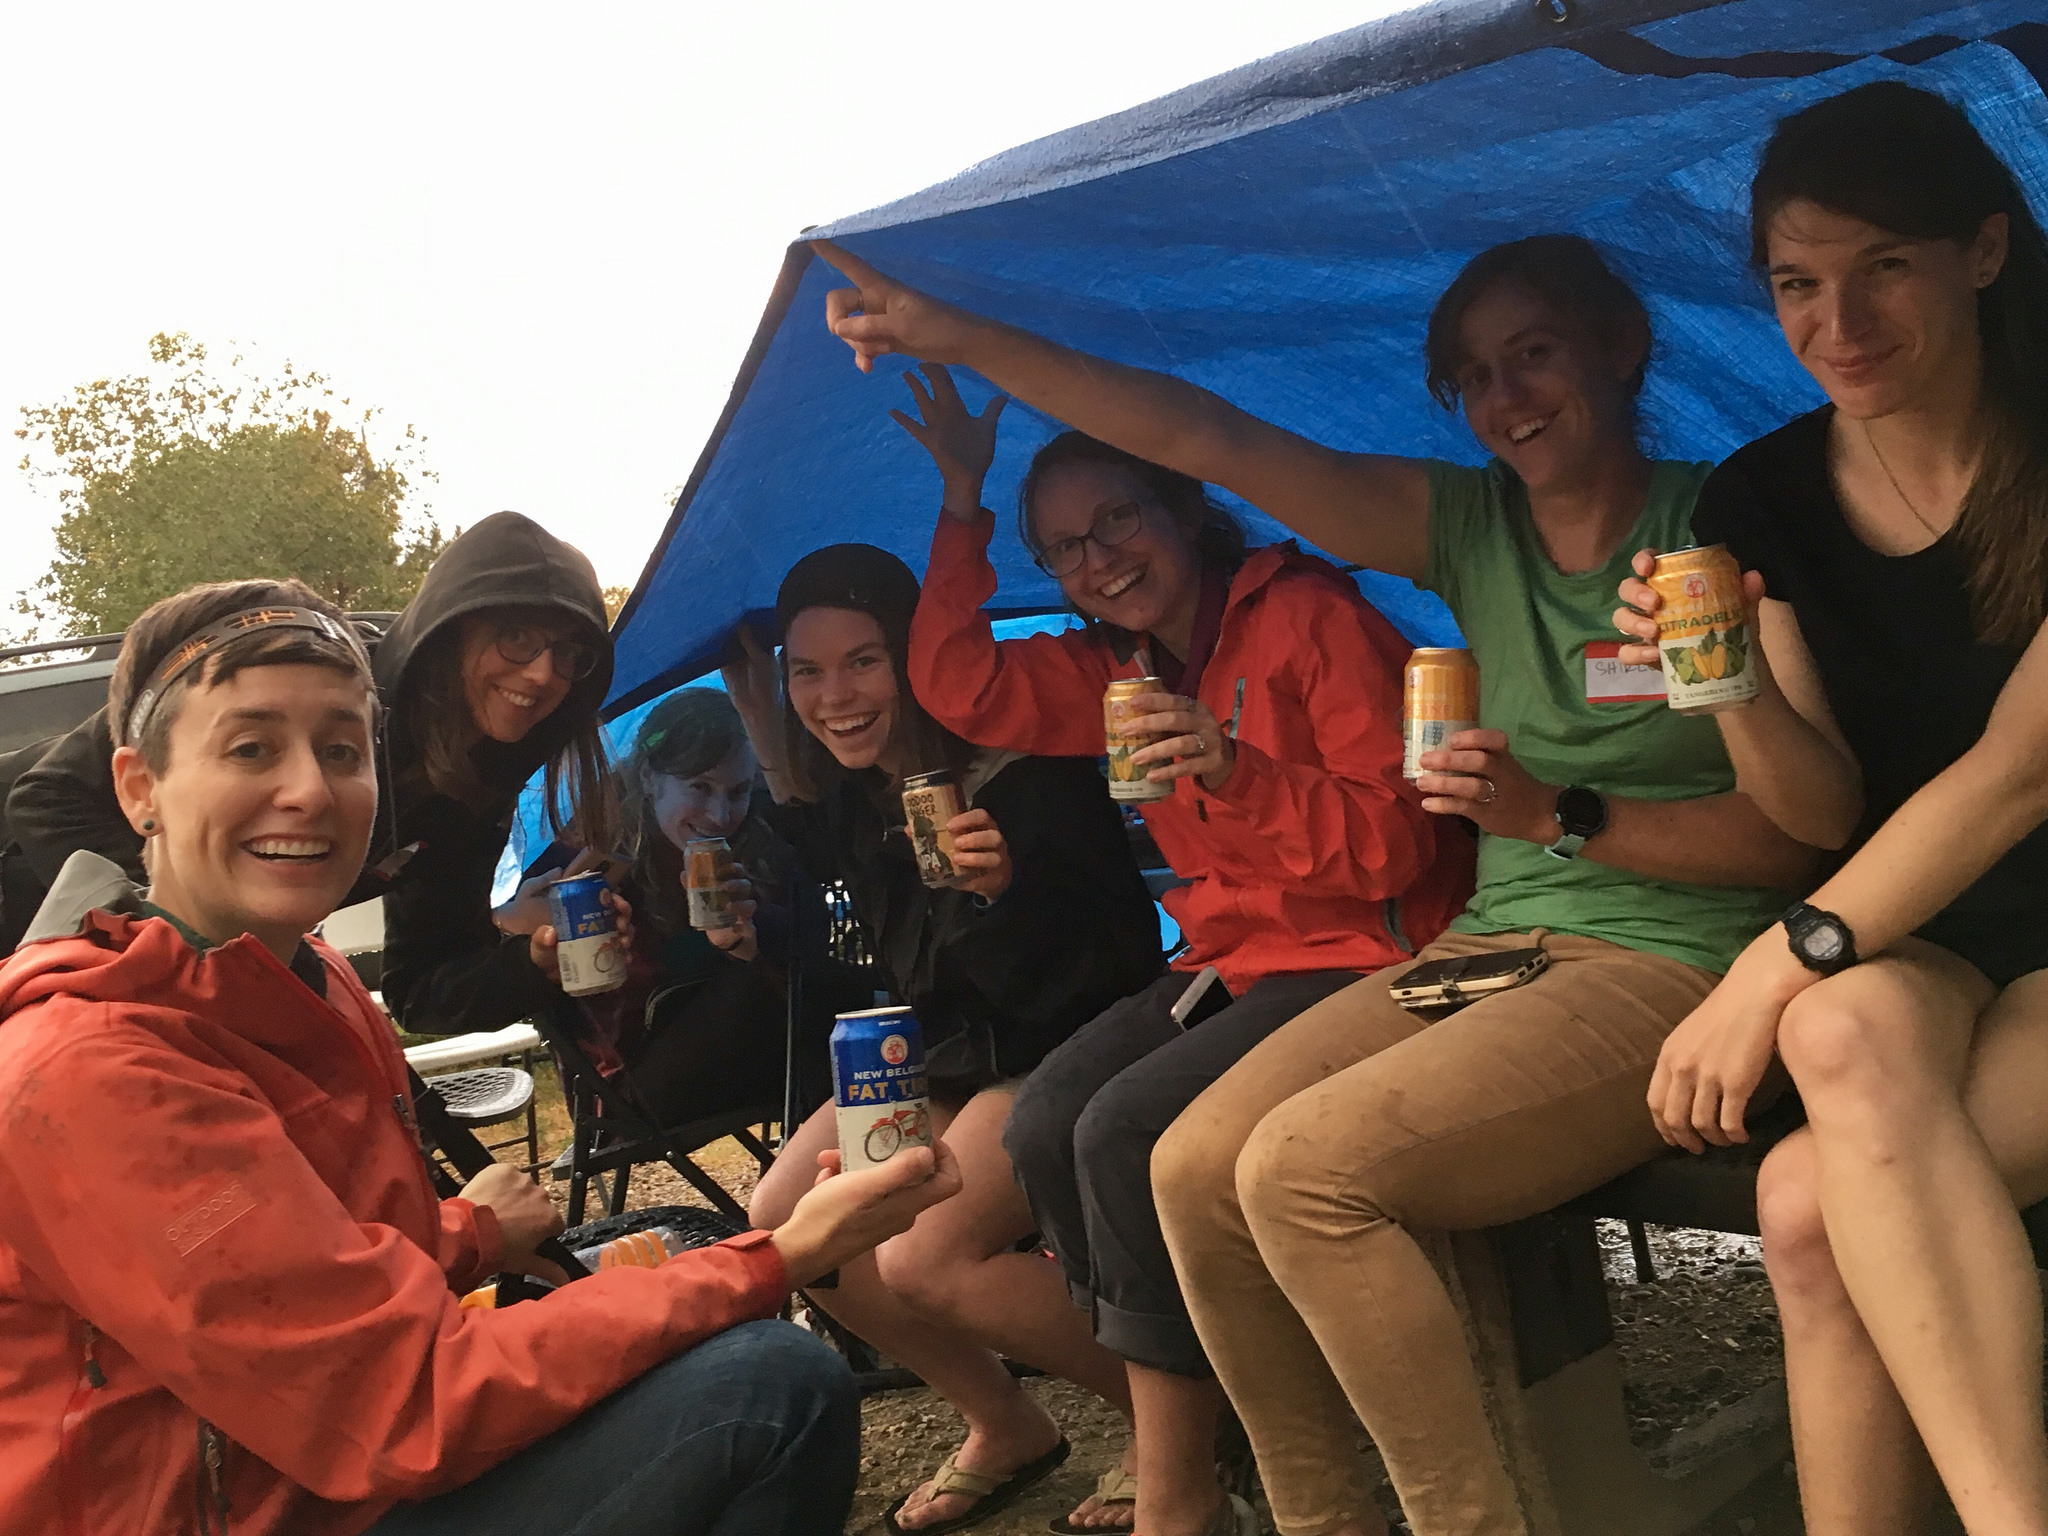 Several women sit under a large blue tarp, other women are wearing rain coats, smiling at the camera